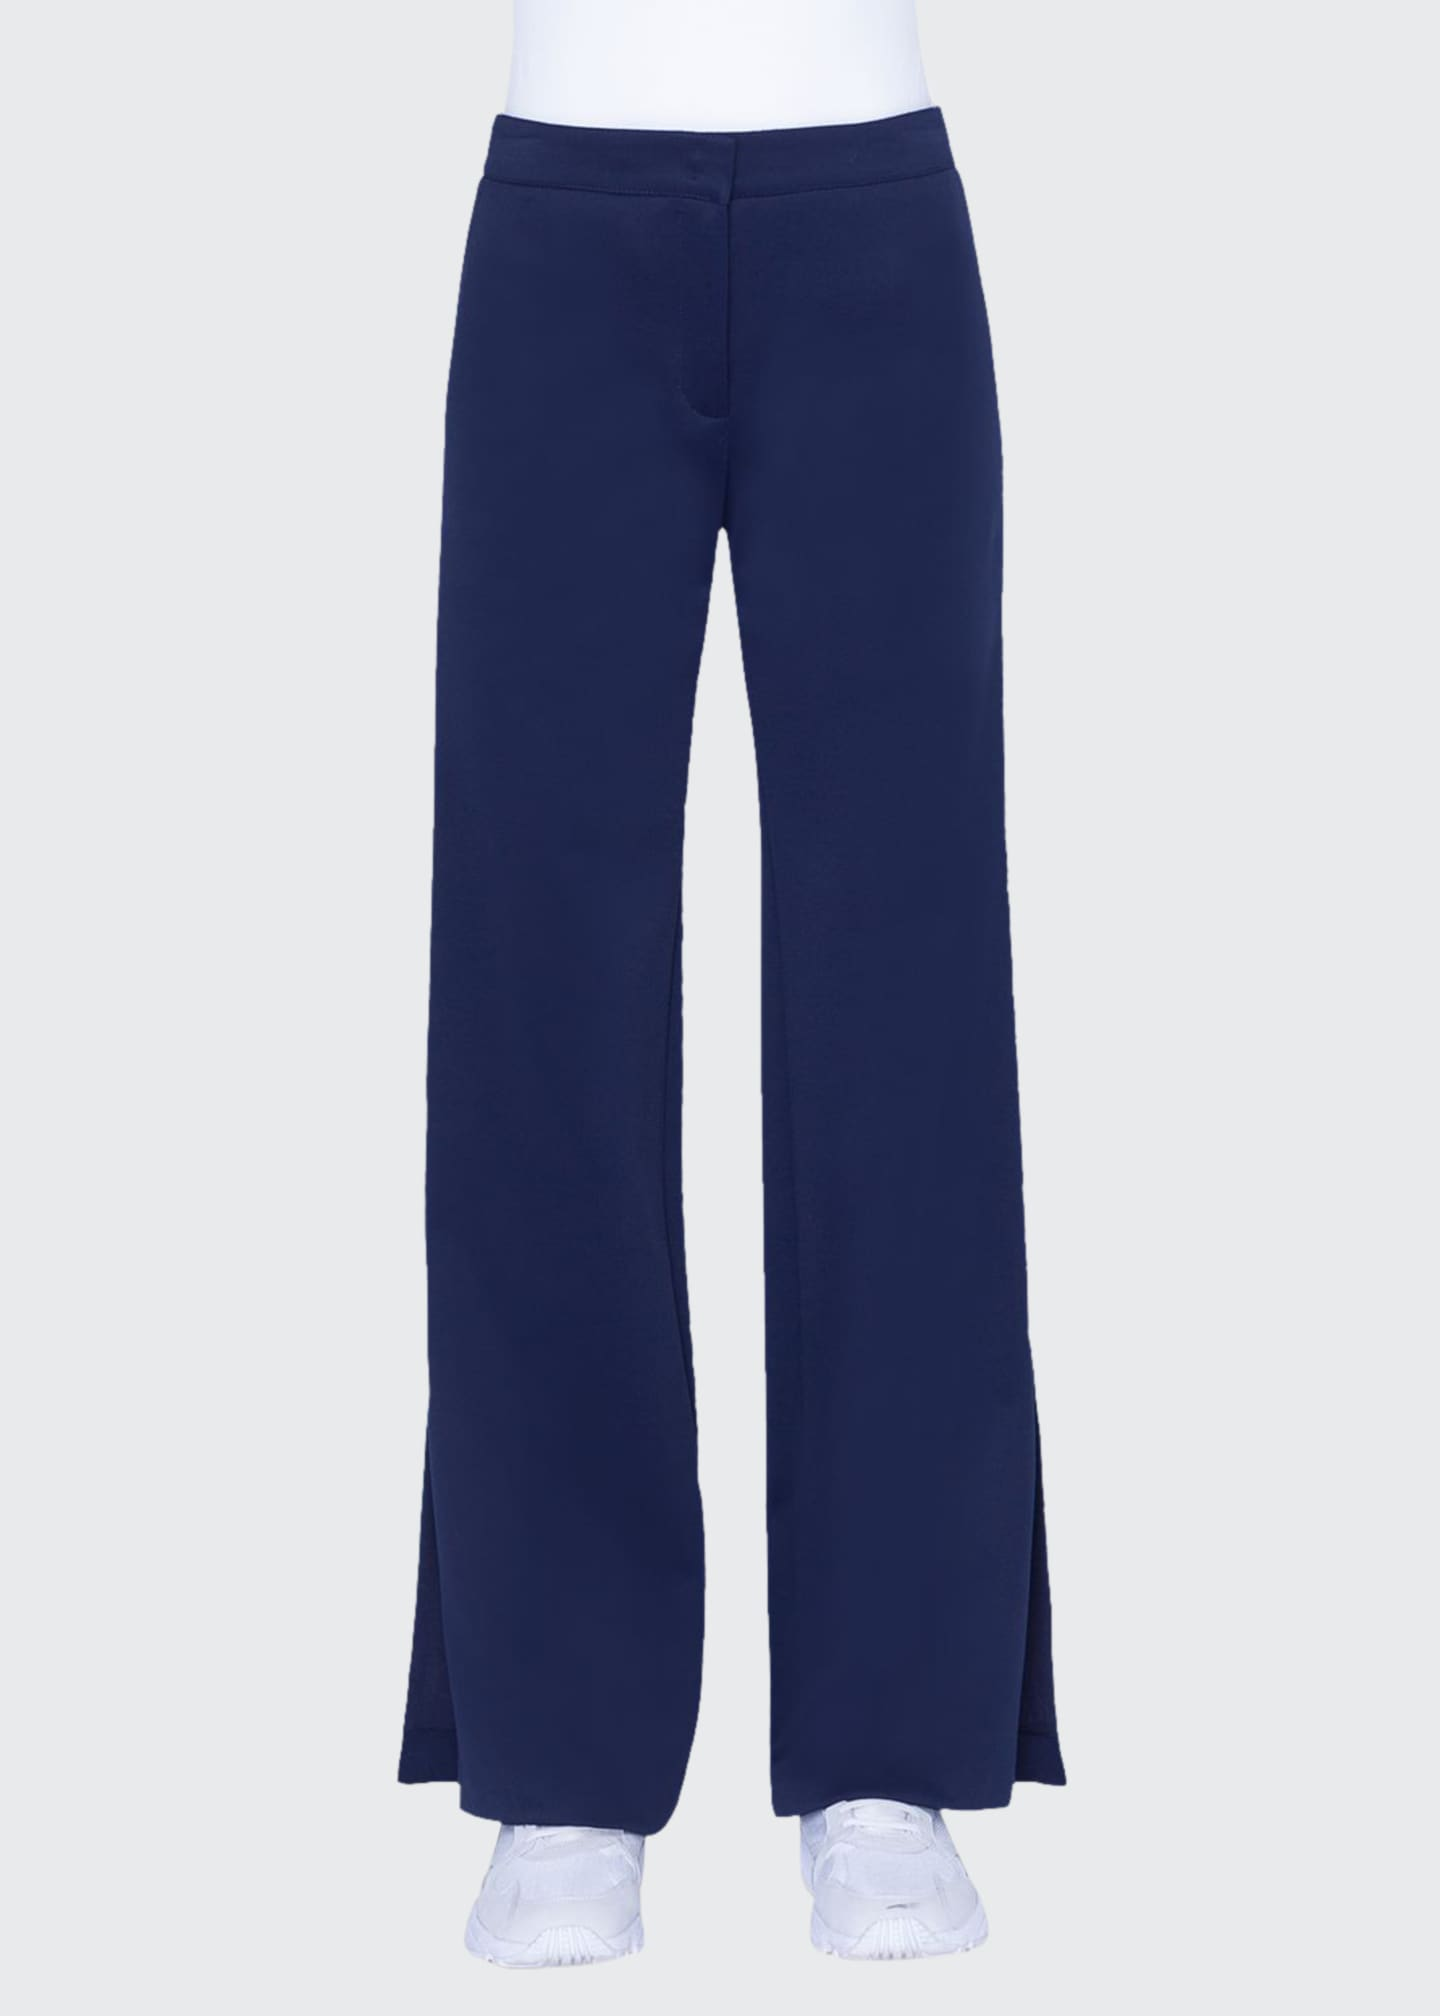 Akris punto Marla Tuxedo-Striped Jersey pants